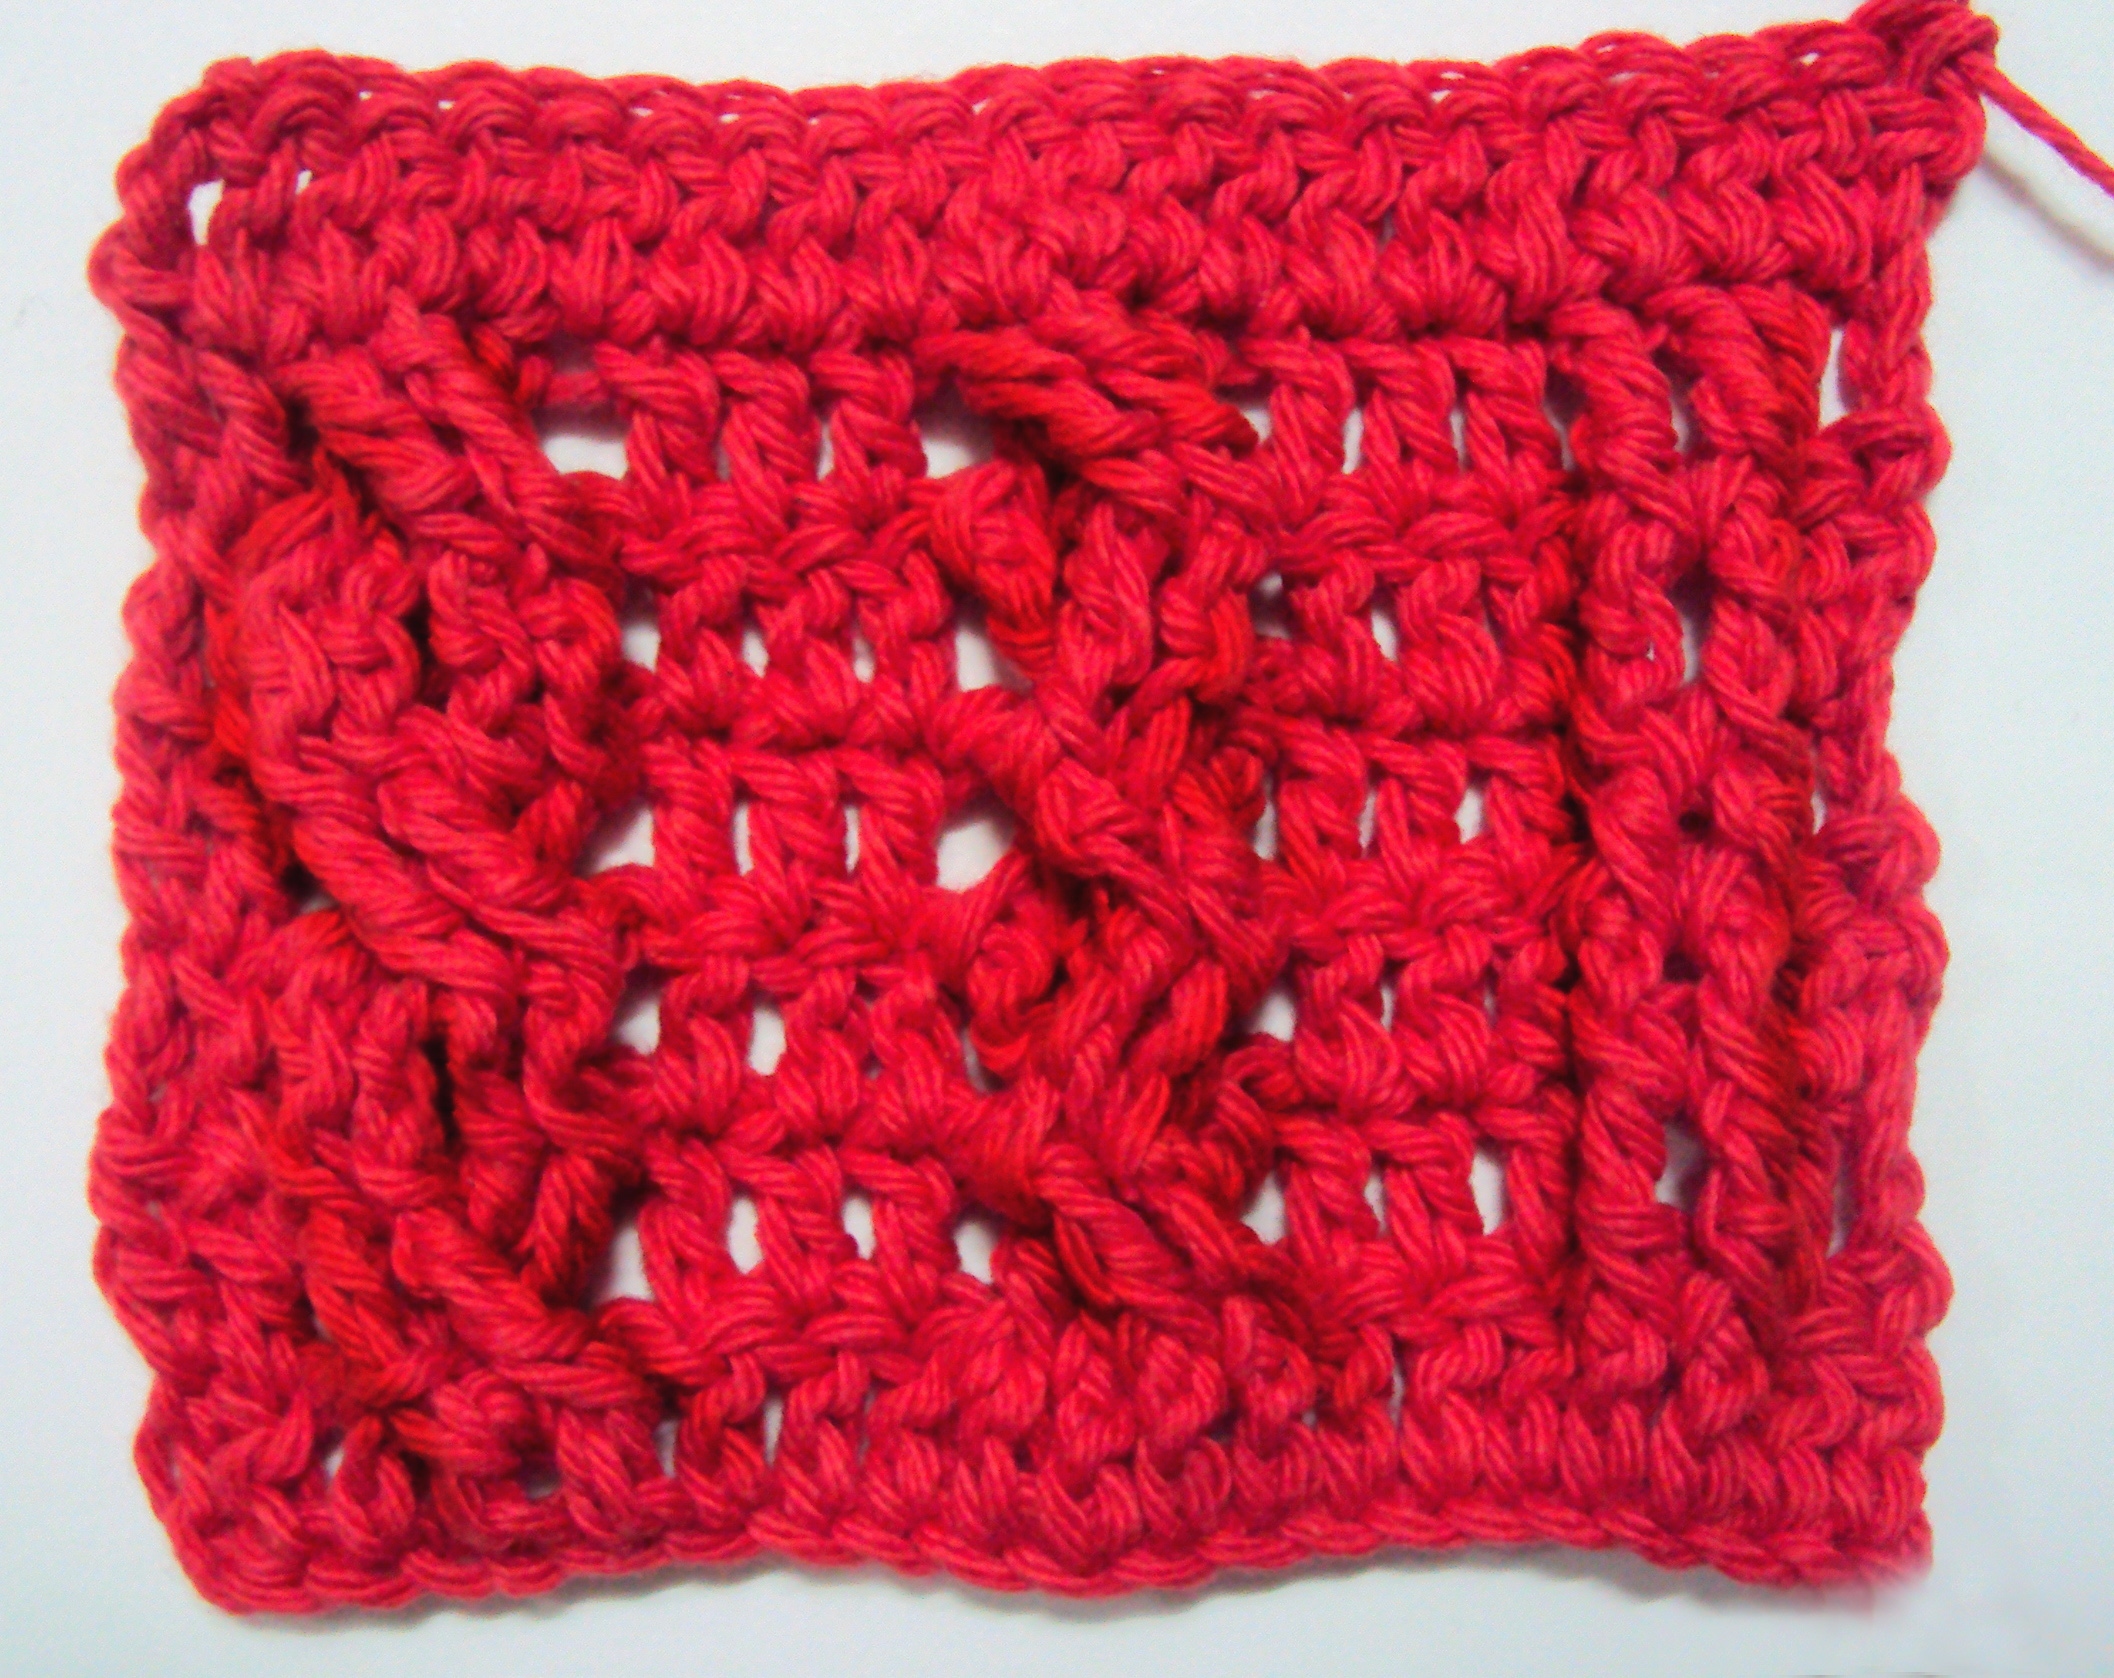 Crochet Stitches Patterns : How To Crochet Videos Crochet Guild